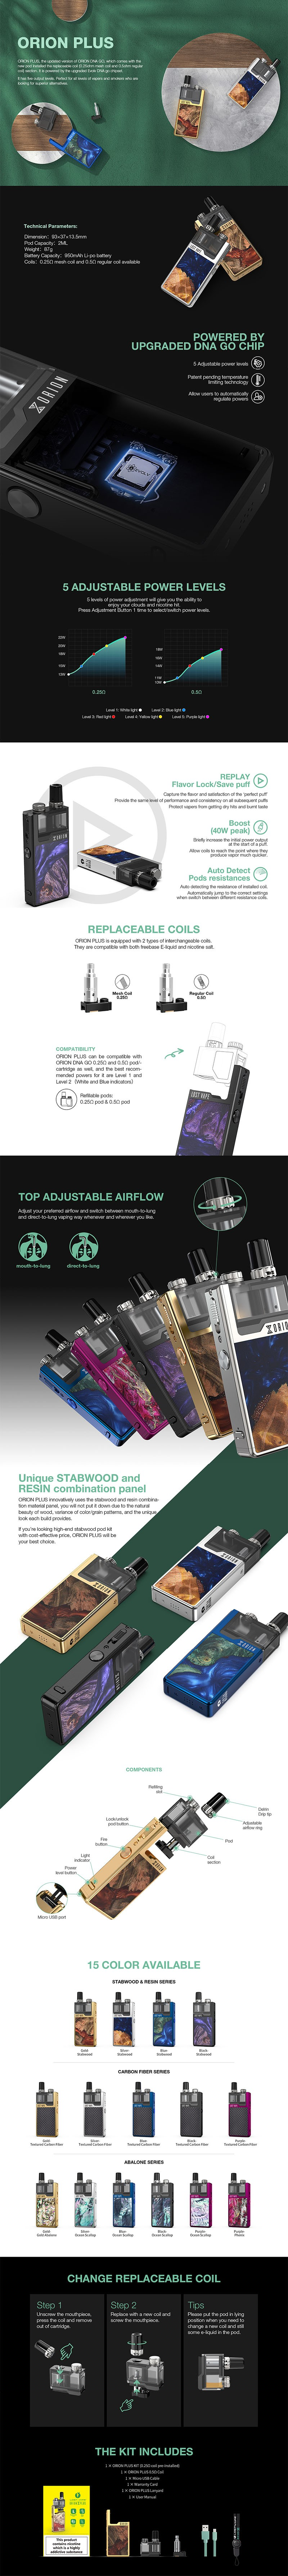 Lost Vape Orion Plus DNA 22W 950mAh VW Pod System Starter Kit